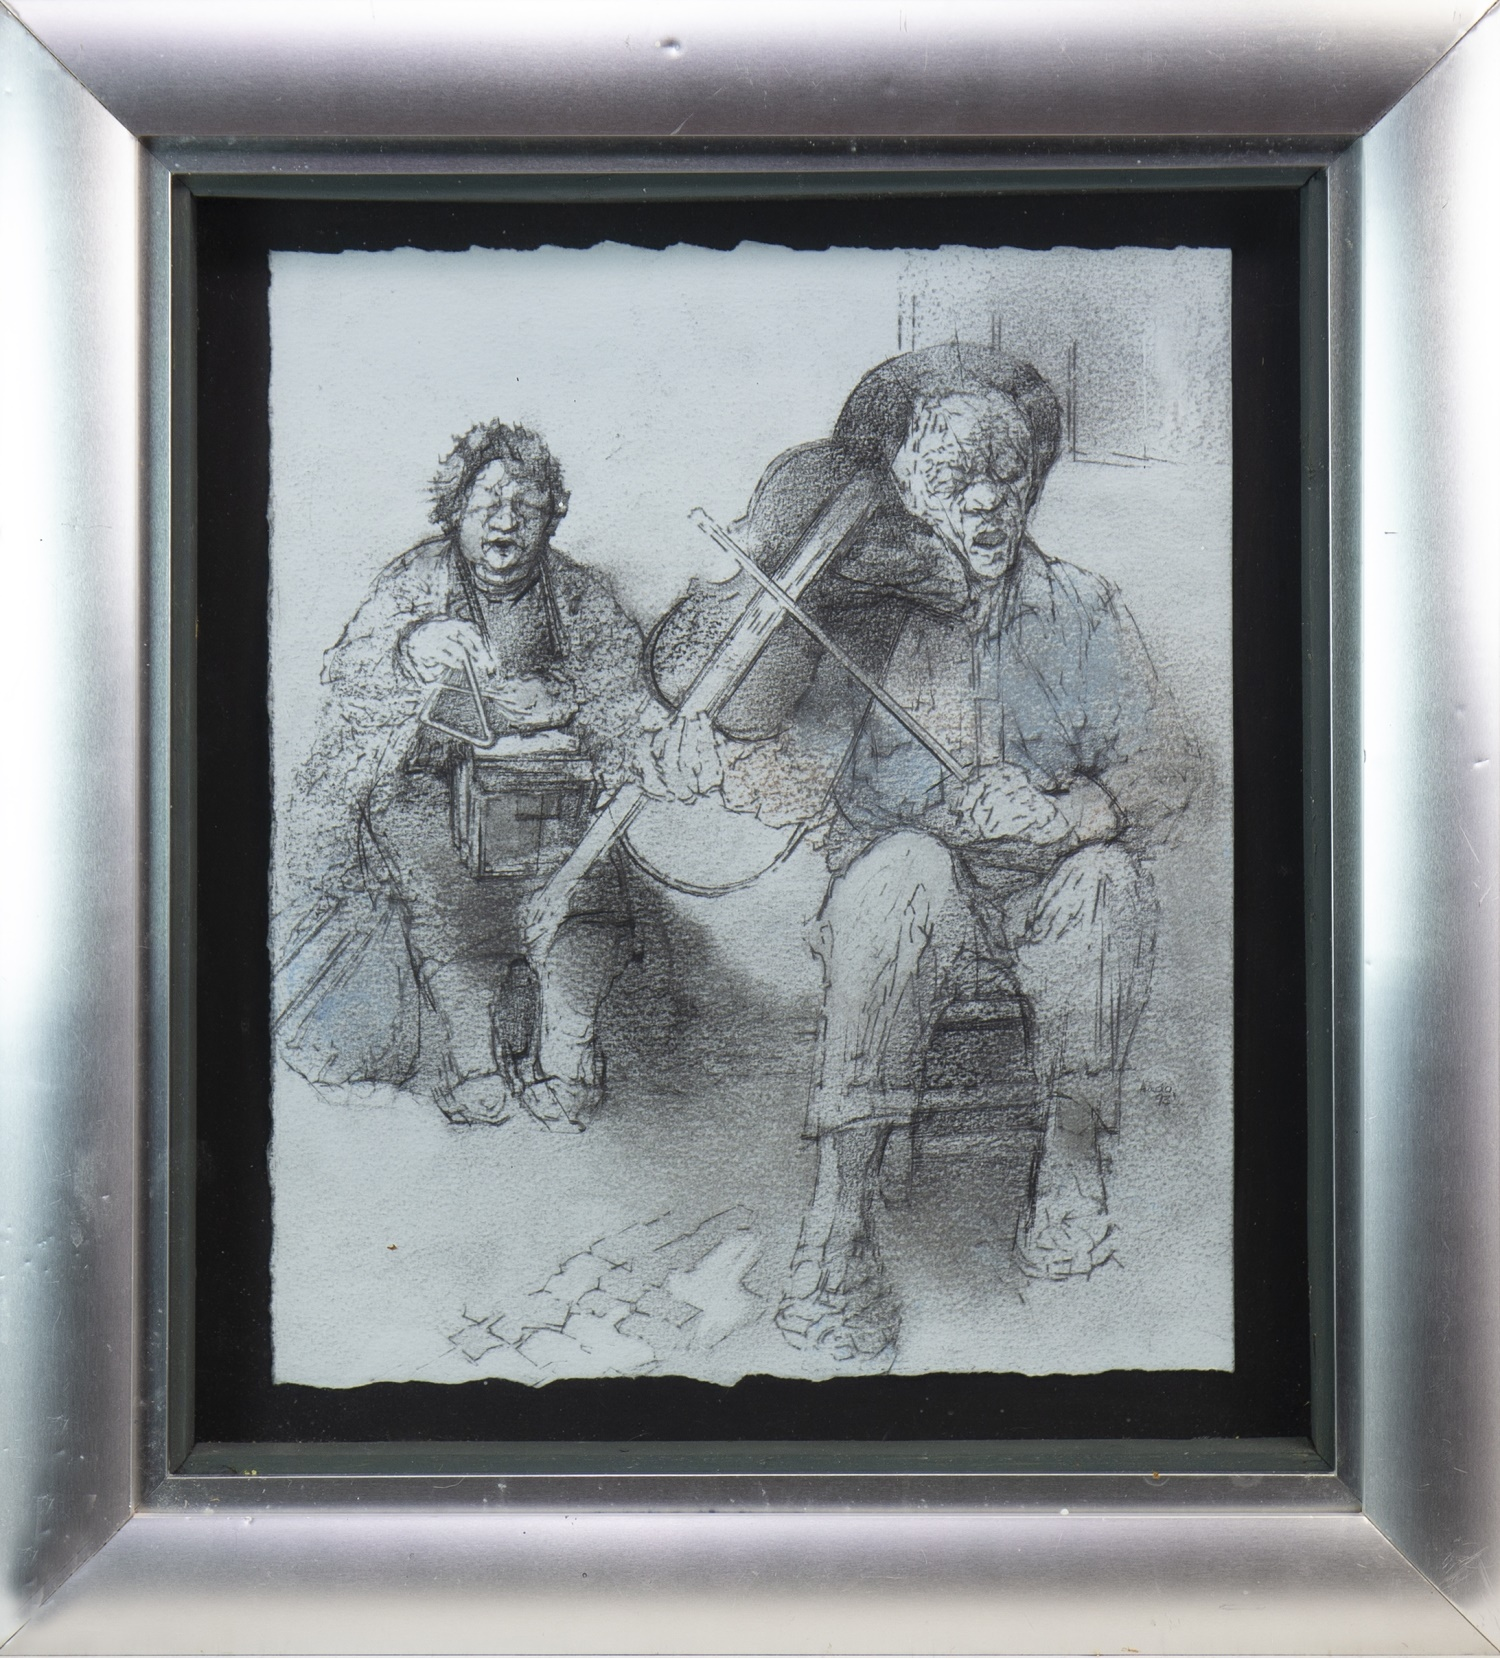 Lot 533 - BLIND MUSICIANS, FADO SINGERS, A MIXED MEDIA BY ANDA PATERSON